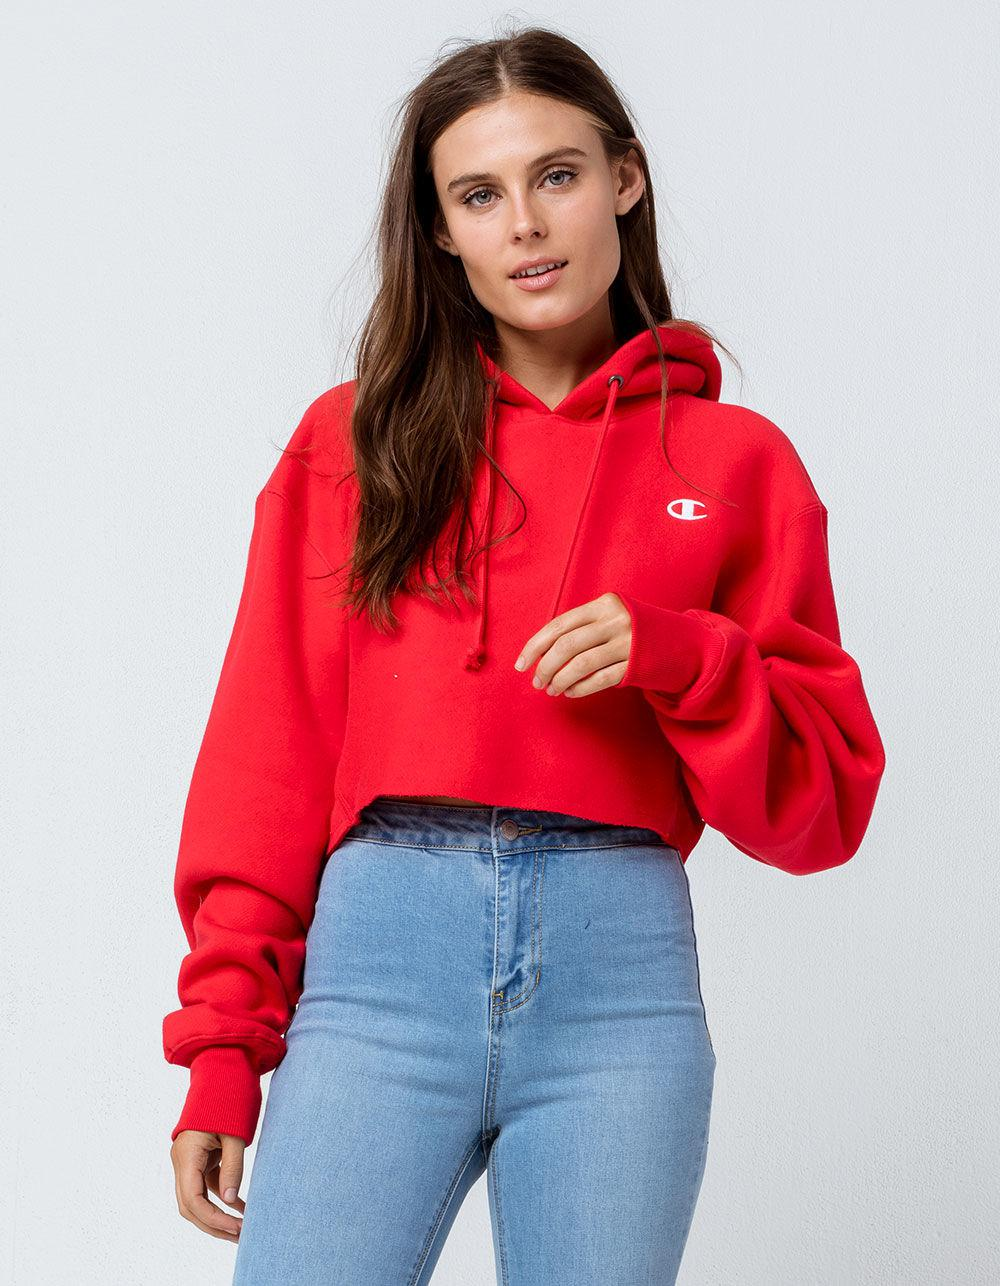 8b23a7d021c52 Lyst - Champion Reverse Weave Red Womens Crop Hoodie in Red